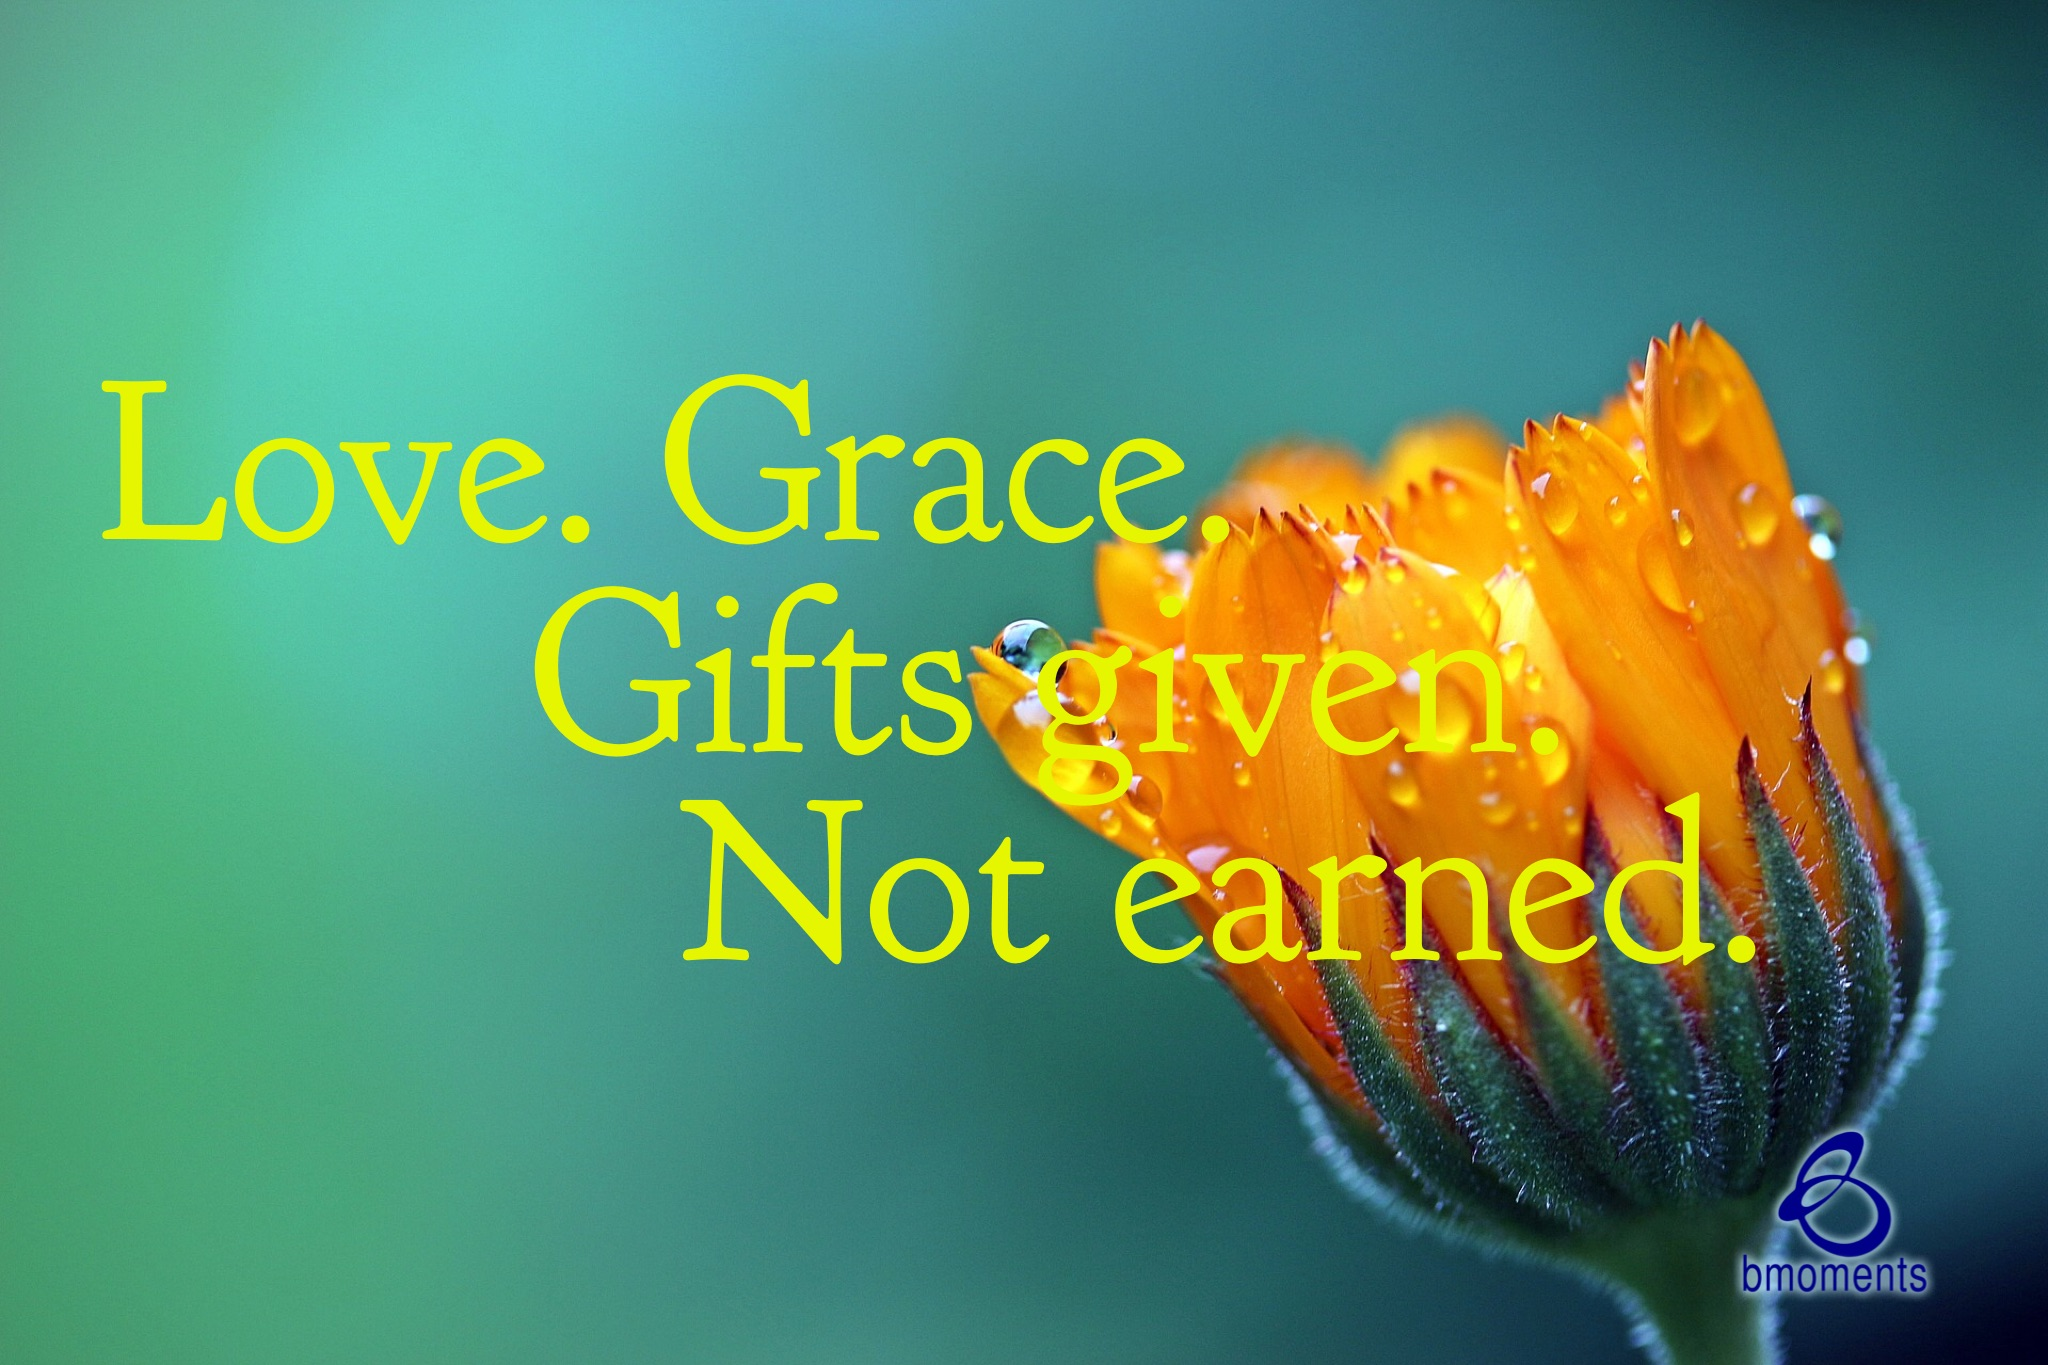 God's Grace Can't Be Earned